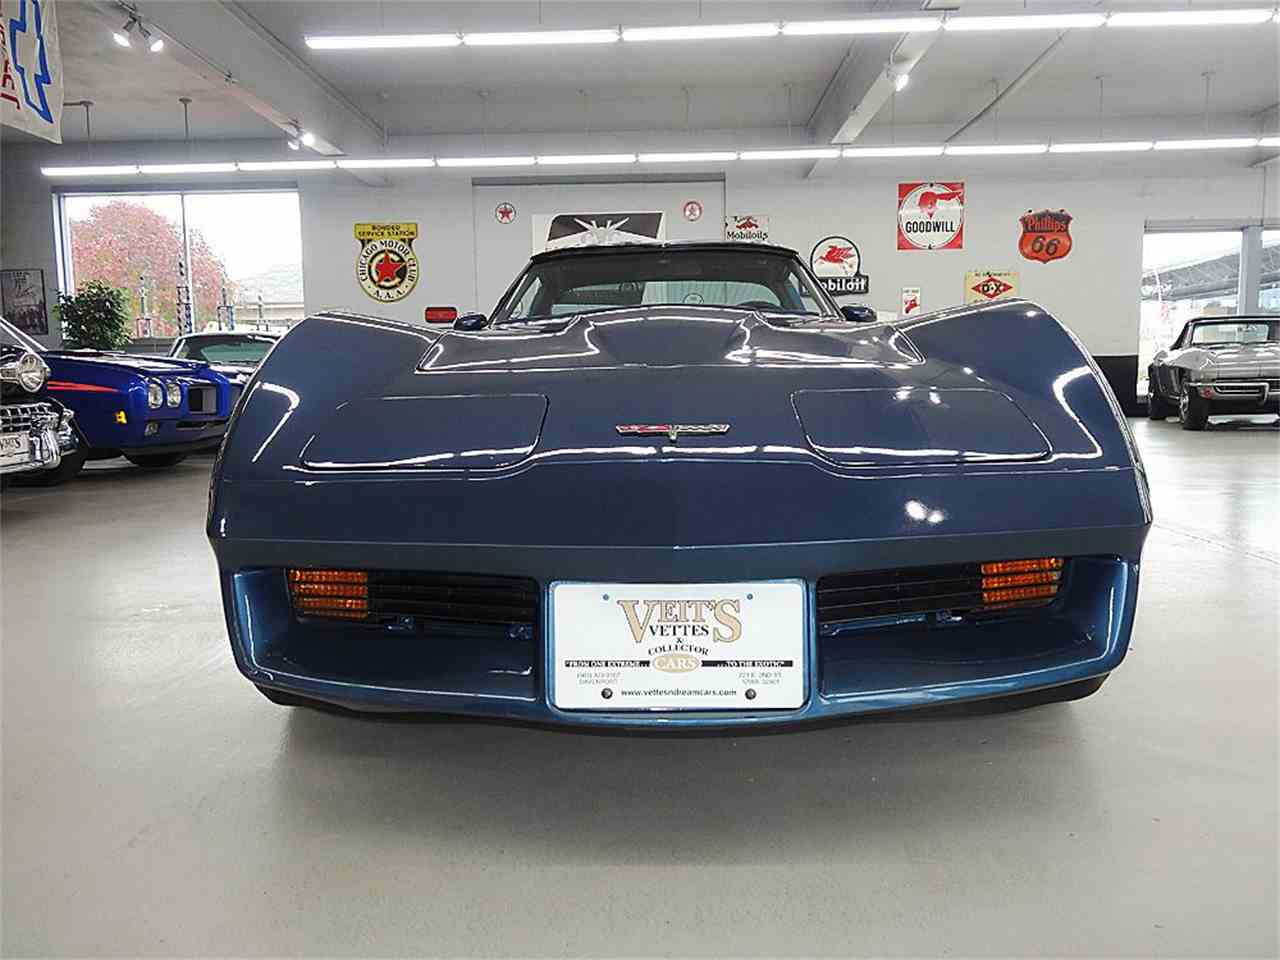 Large Picture of 1980 Corvette located in Bettendorf Iowa - $21,500.00 Offered by Veit's Vettes And Collector Cars - LTWF